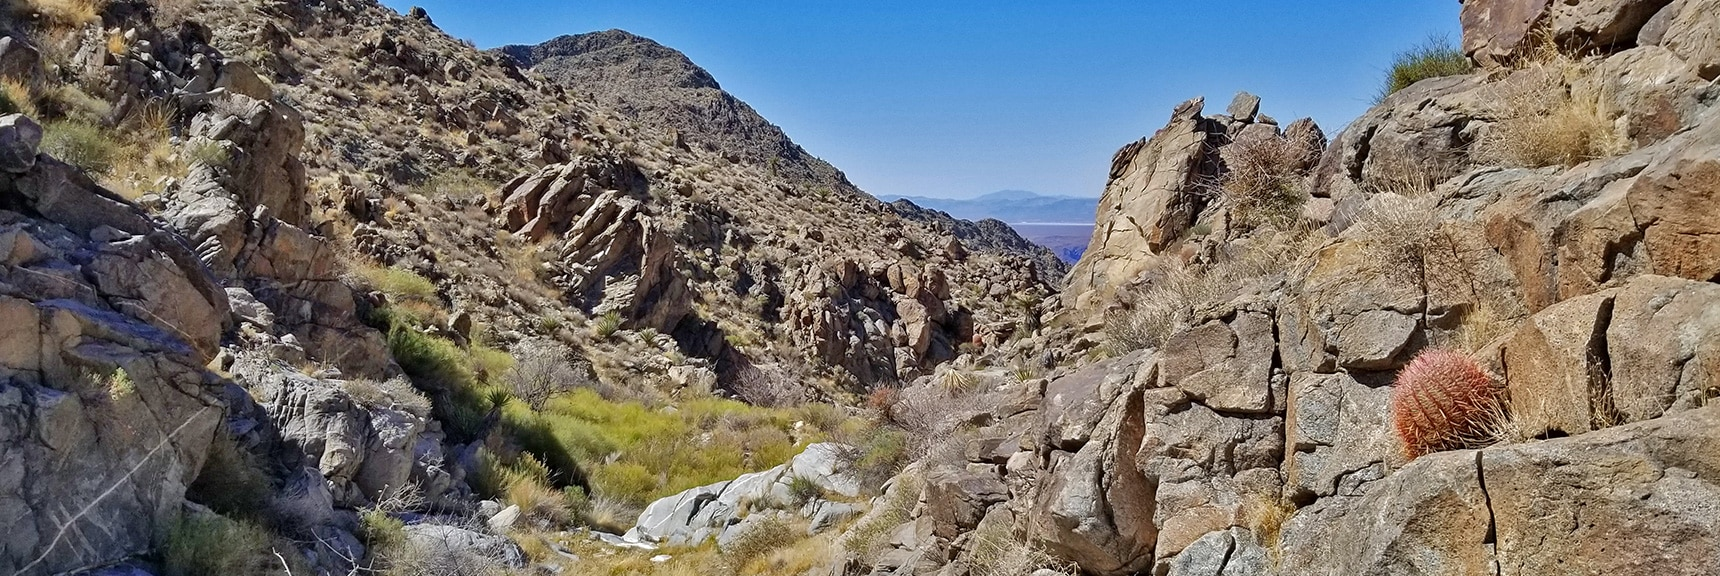 View Down Upper Horse Thief Canyon to Lake Mead and Beyond.   Horse Thief Canyon Loop   Mt. Wilson   Black Mountains   Lake Mead National Recreation Area, Arizona